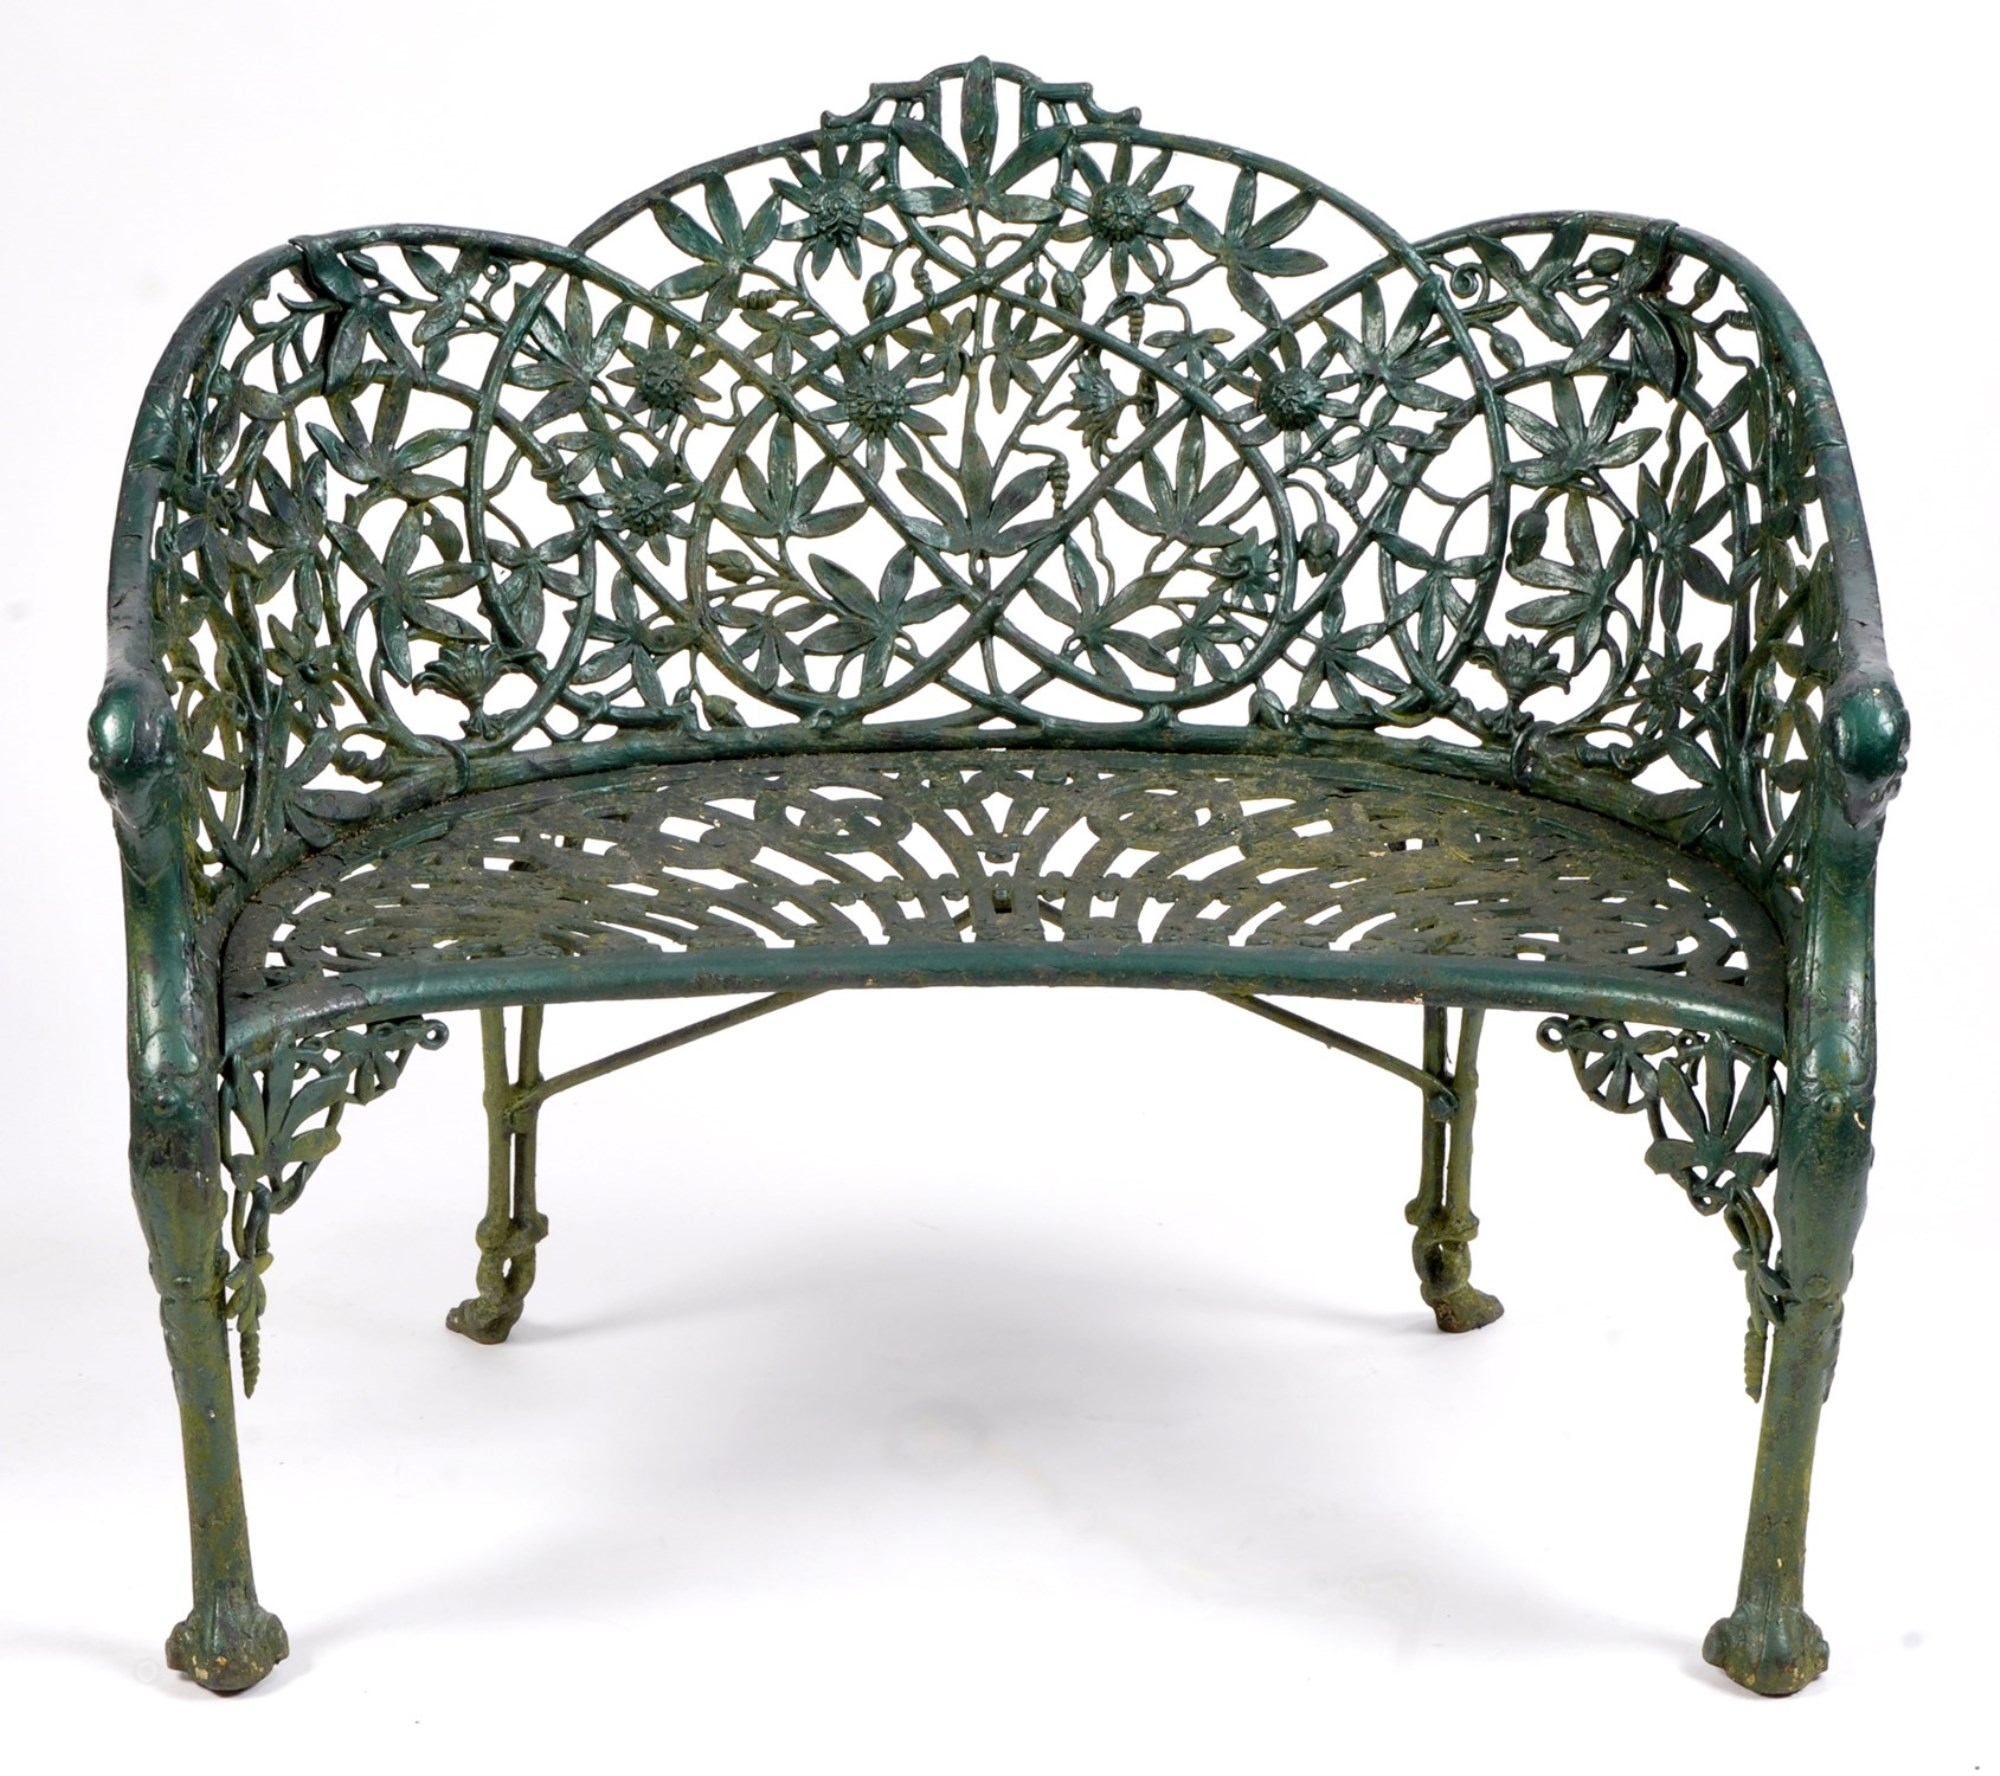 A Victorian green painted cast iron garden seat, by Coalbrookdale Co., in No. 32 passion flower design